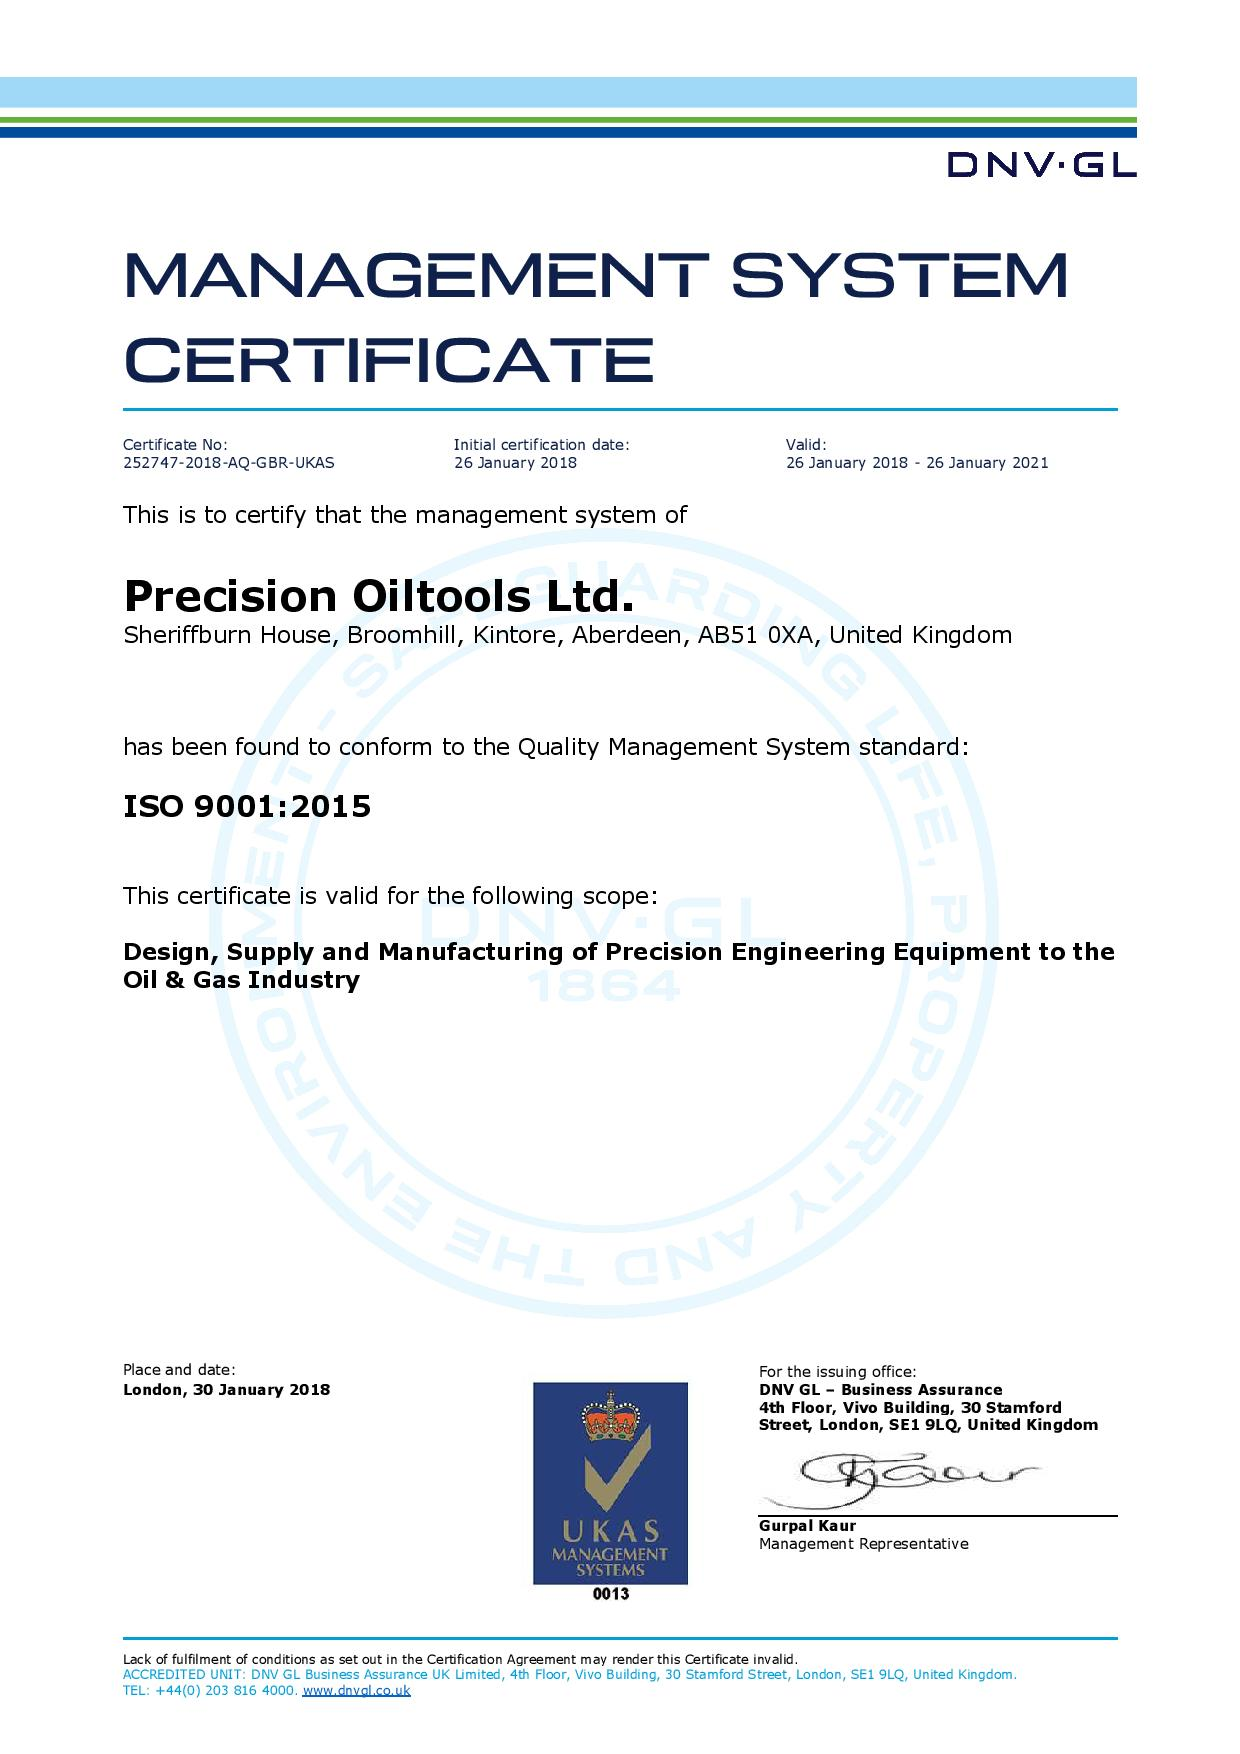 E-Word Cert_30_01_18_252747_9001_DNV GL Certificate-page-001